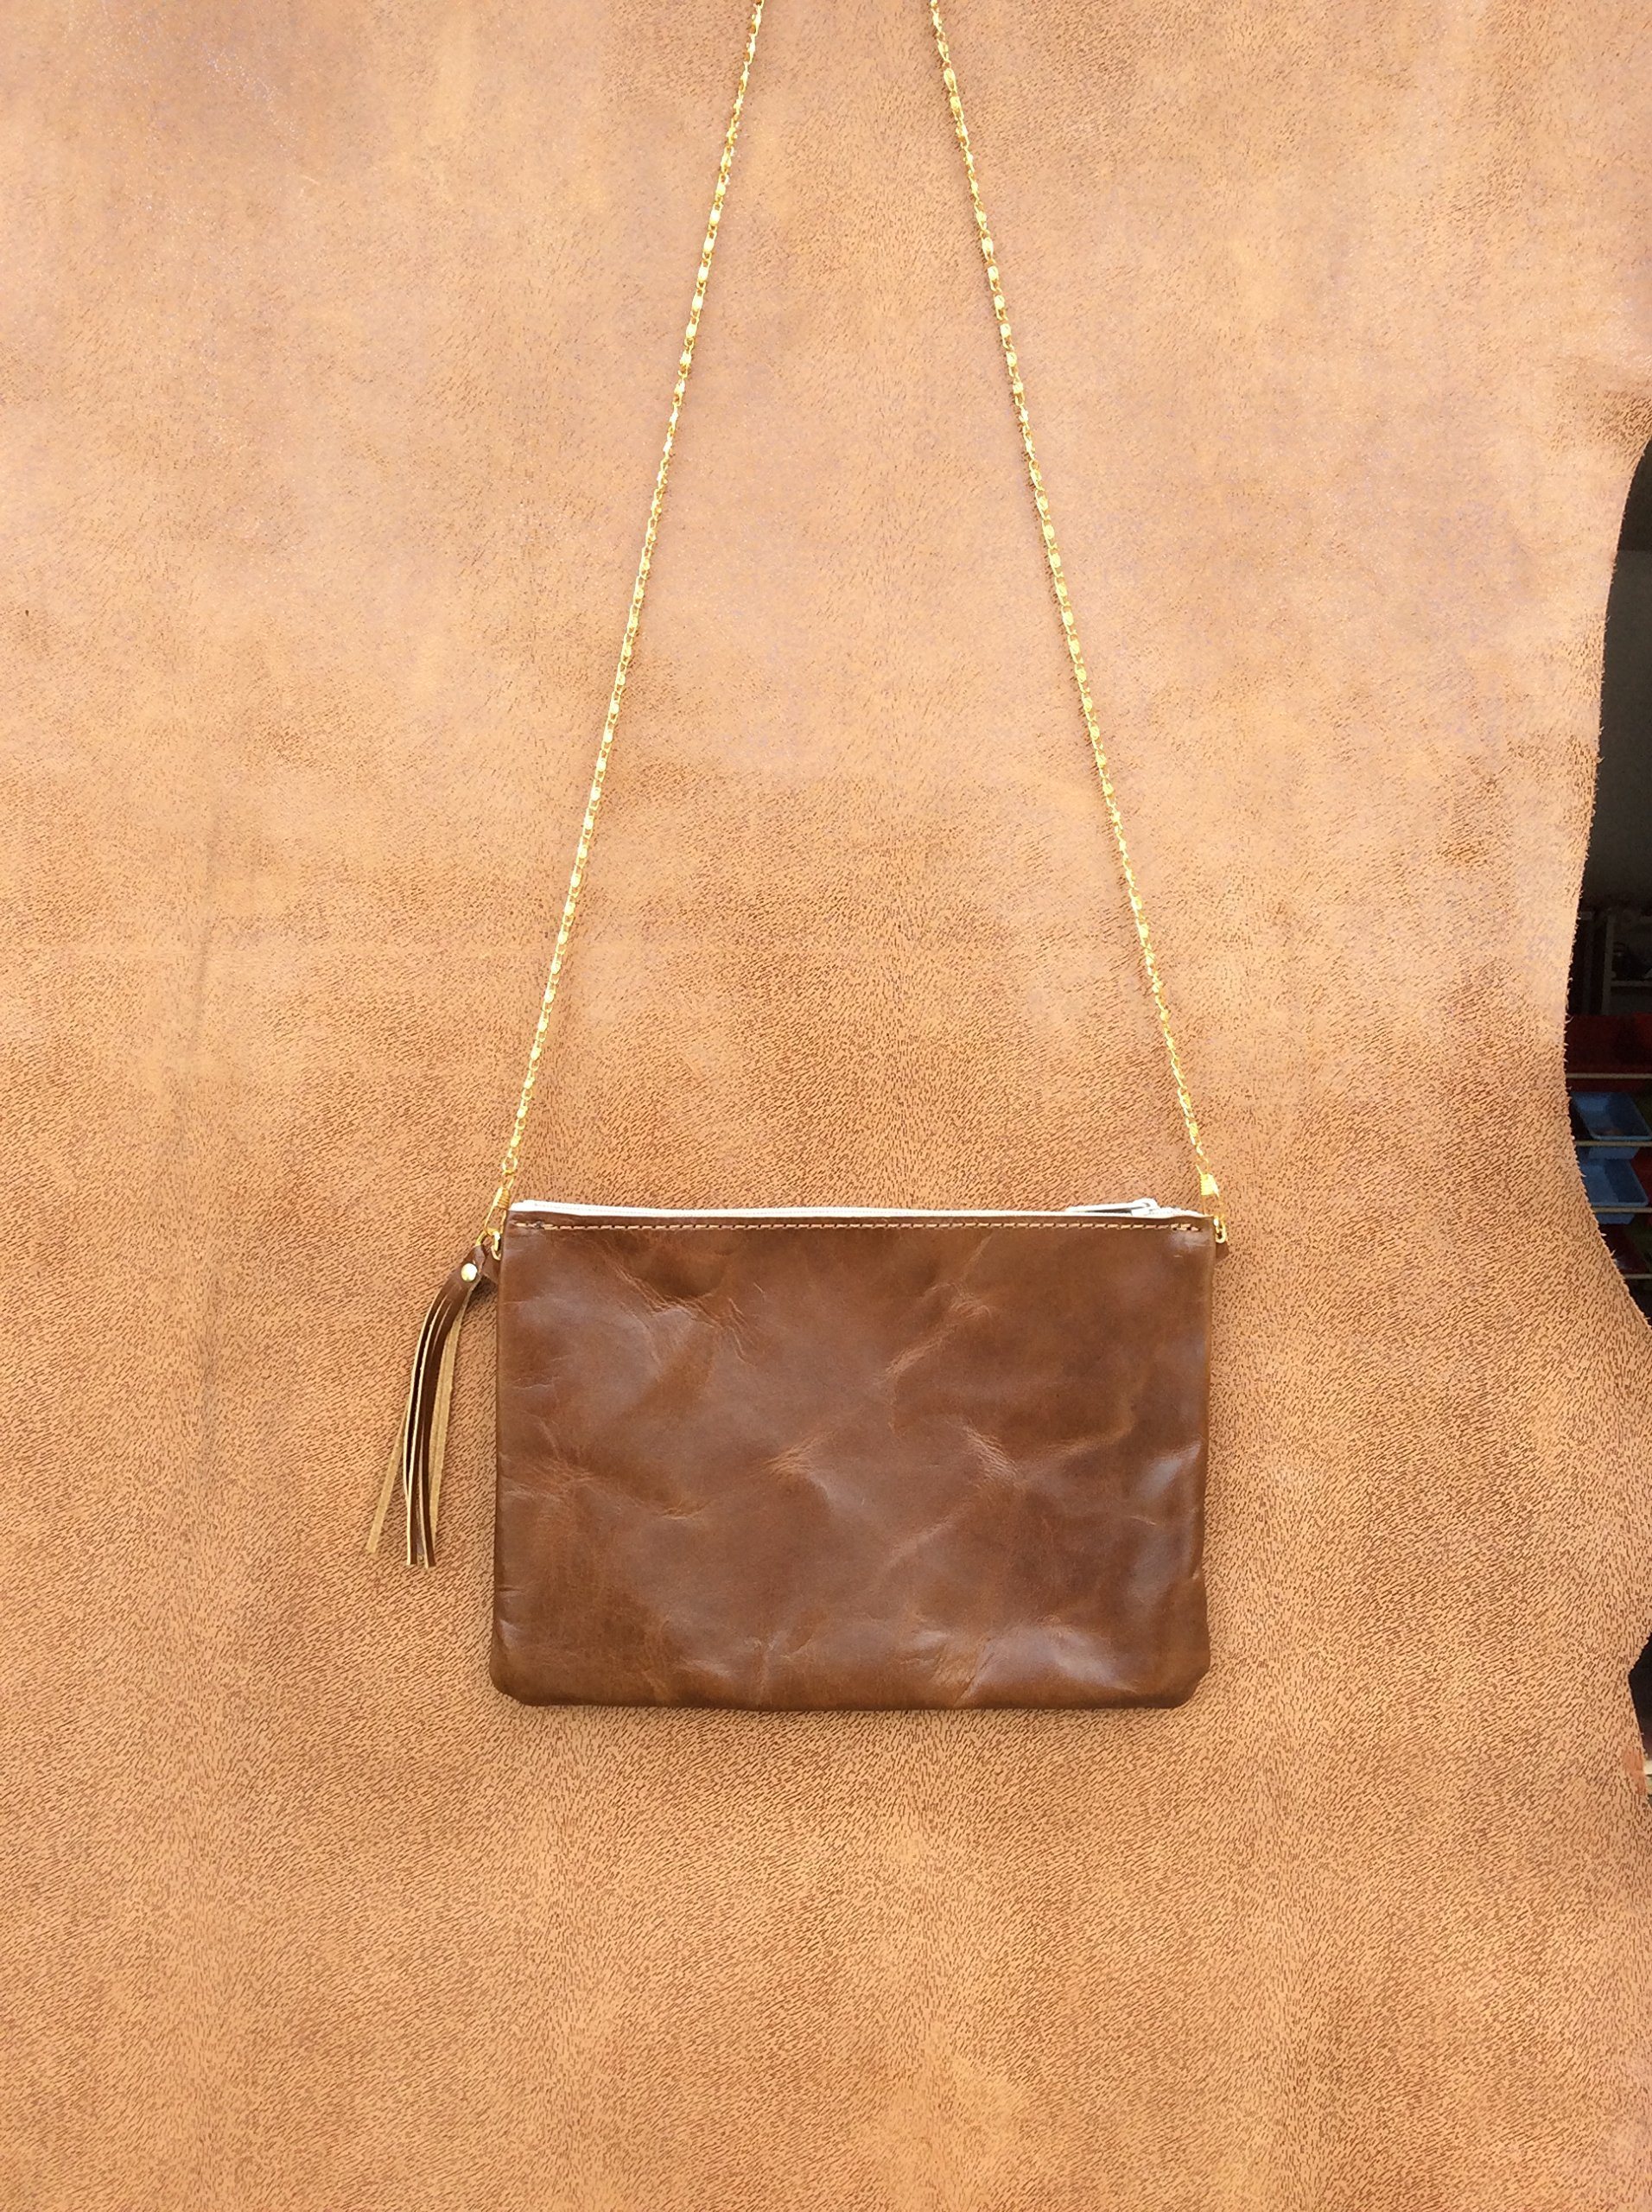 Handmade Genuine Leather Crossbody Bag, Leather Purse Bag, Leather Handbag for Women Made in USA Light Brown Leather M